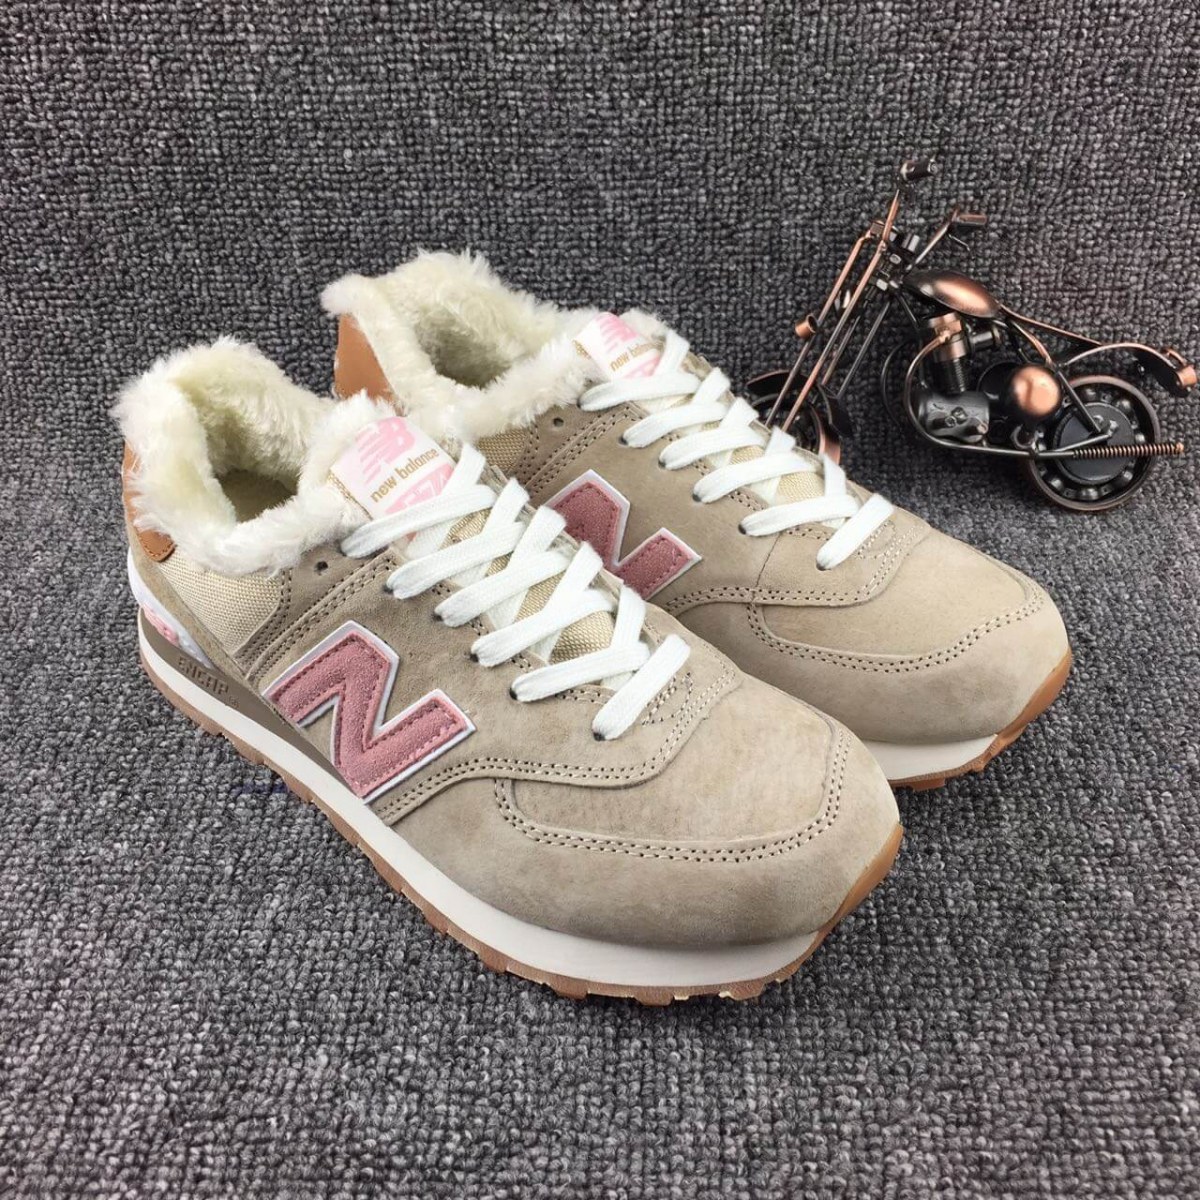 5ee91ee1 Кроссовки New Balance Buty 574 Winter